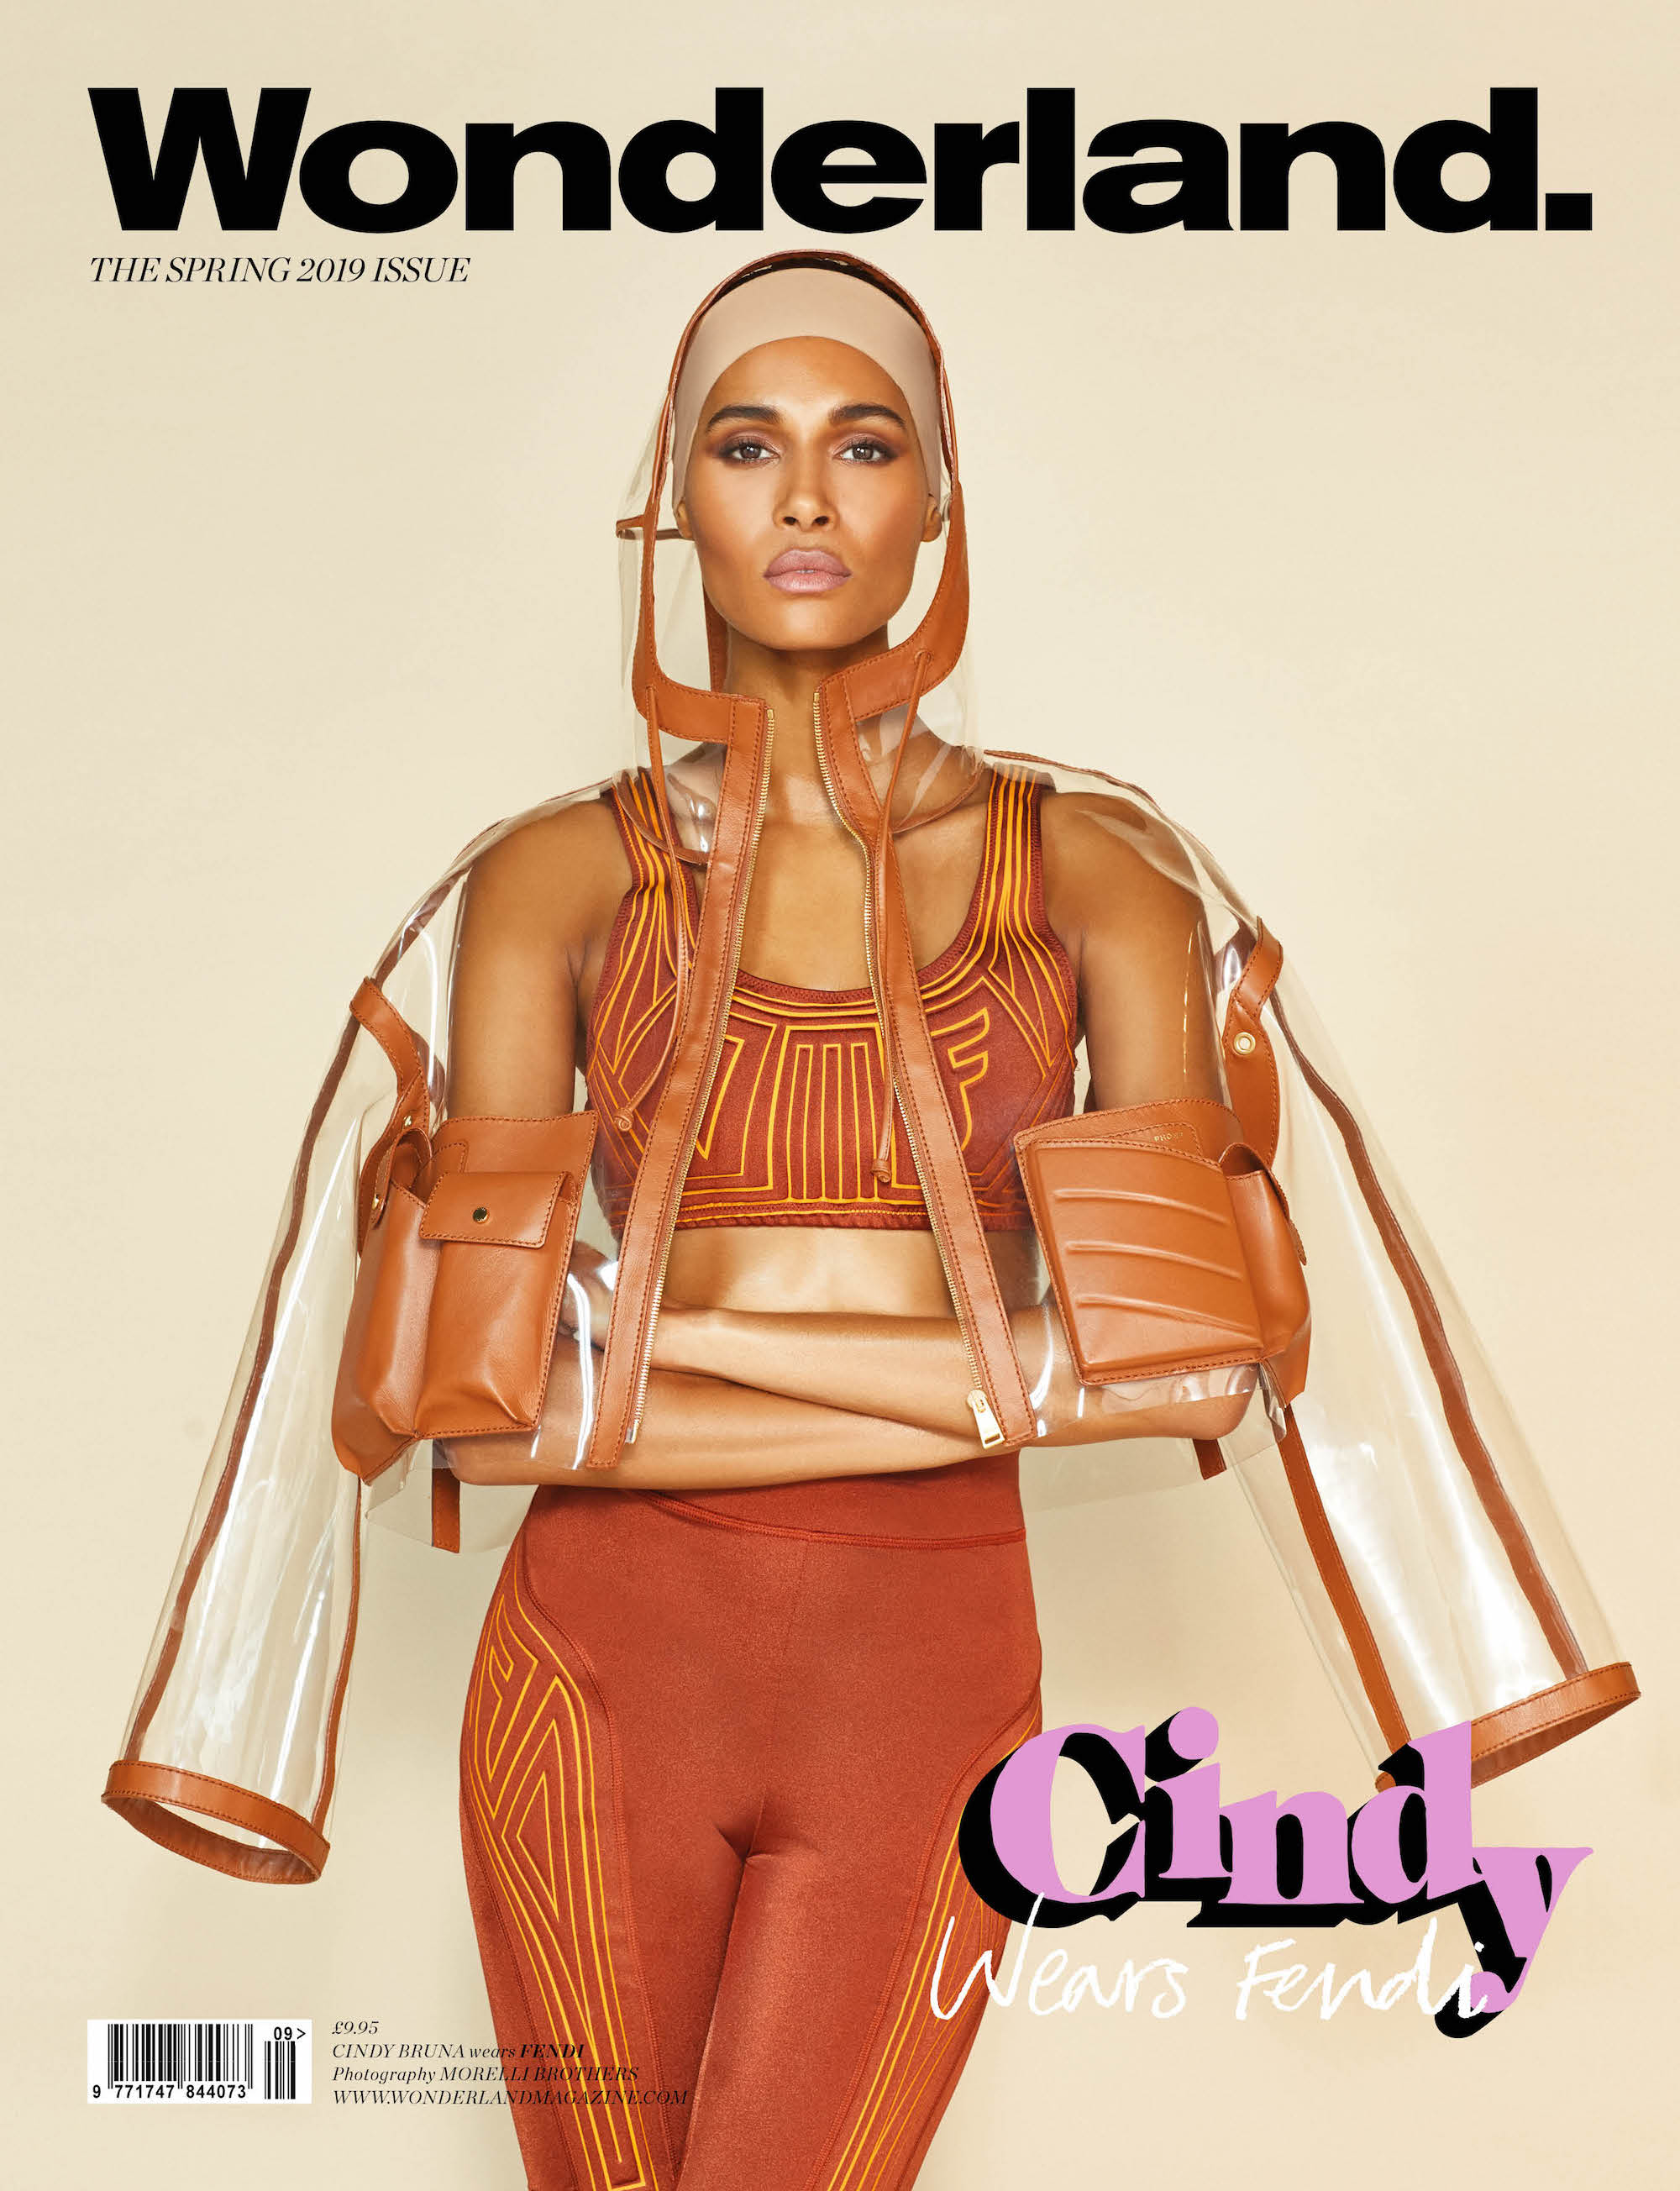 French model Cindy on the digital cover of Wonderland Spring 19 issue